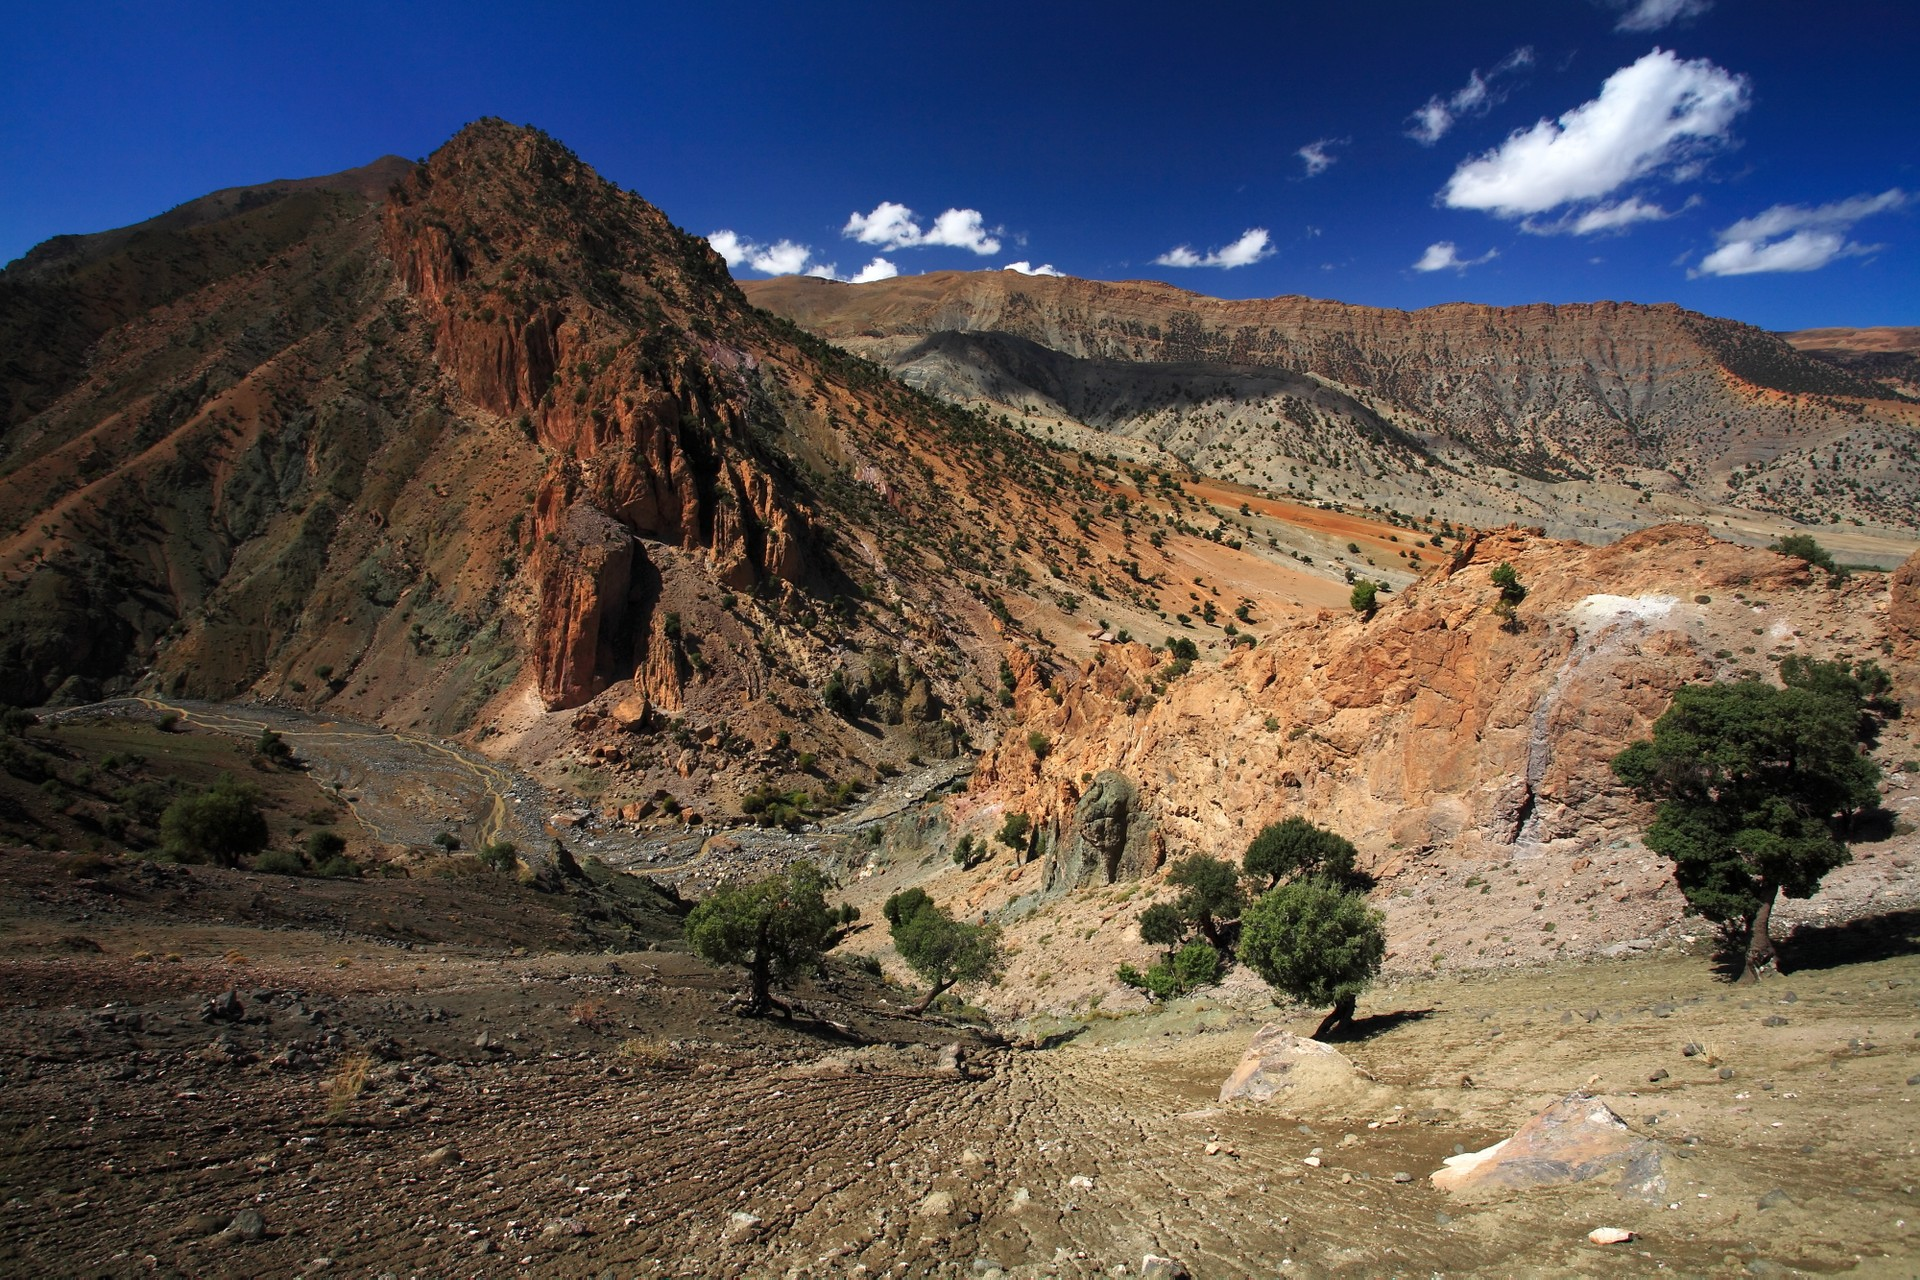 The hills of the Ait Bougamez Valley in Morocco